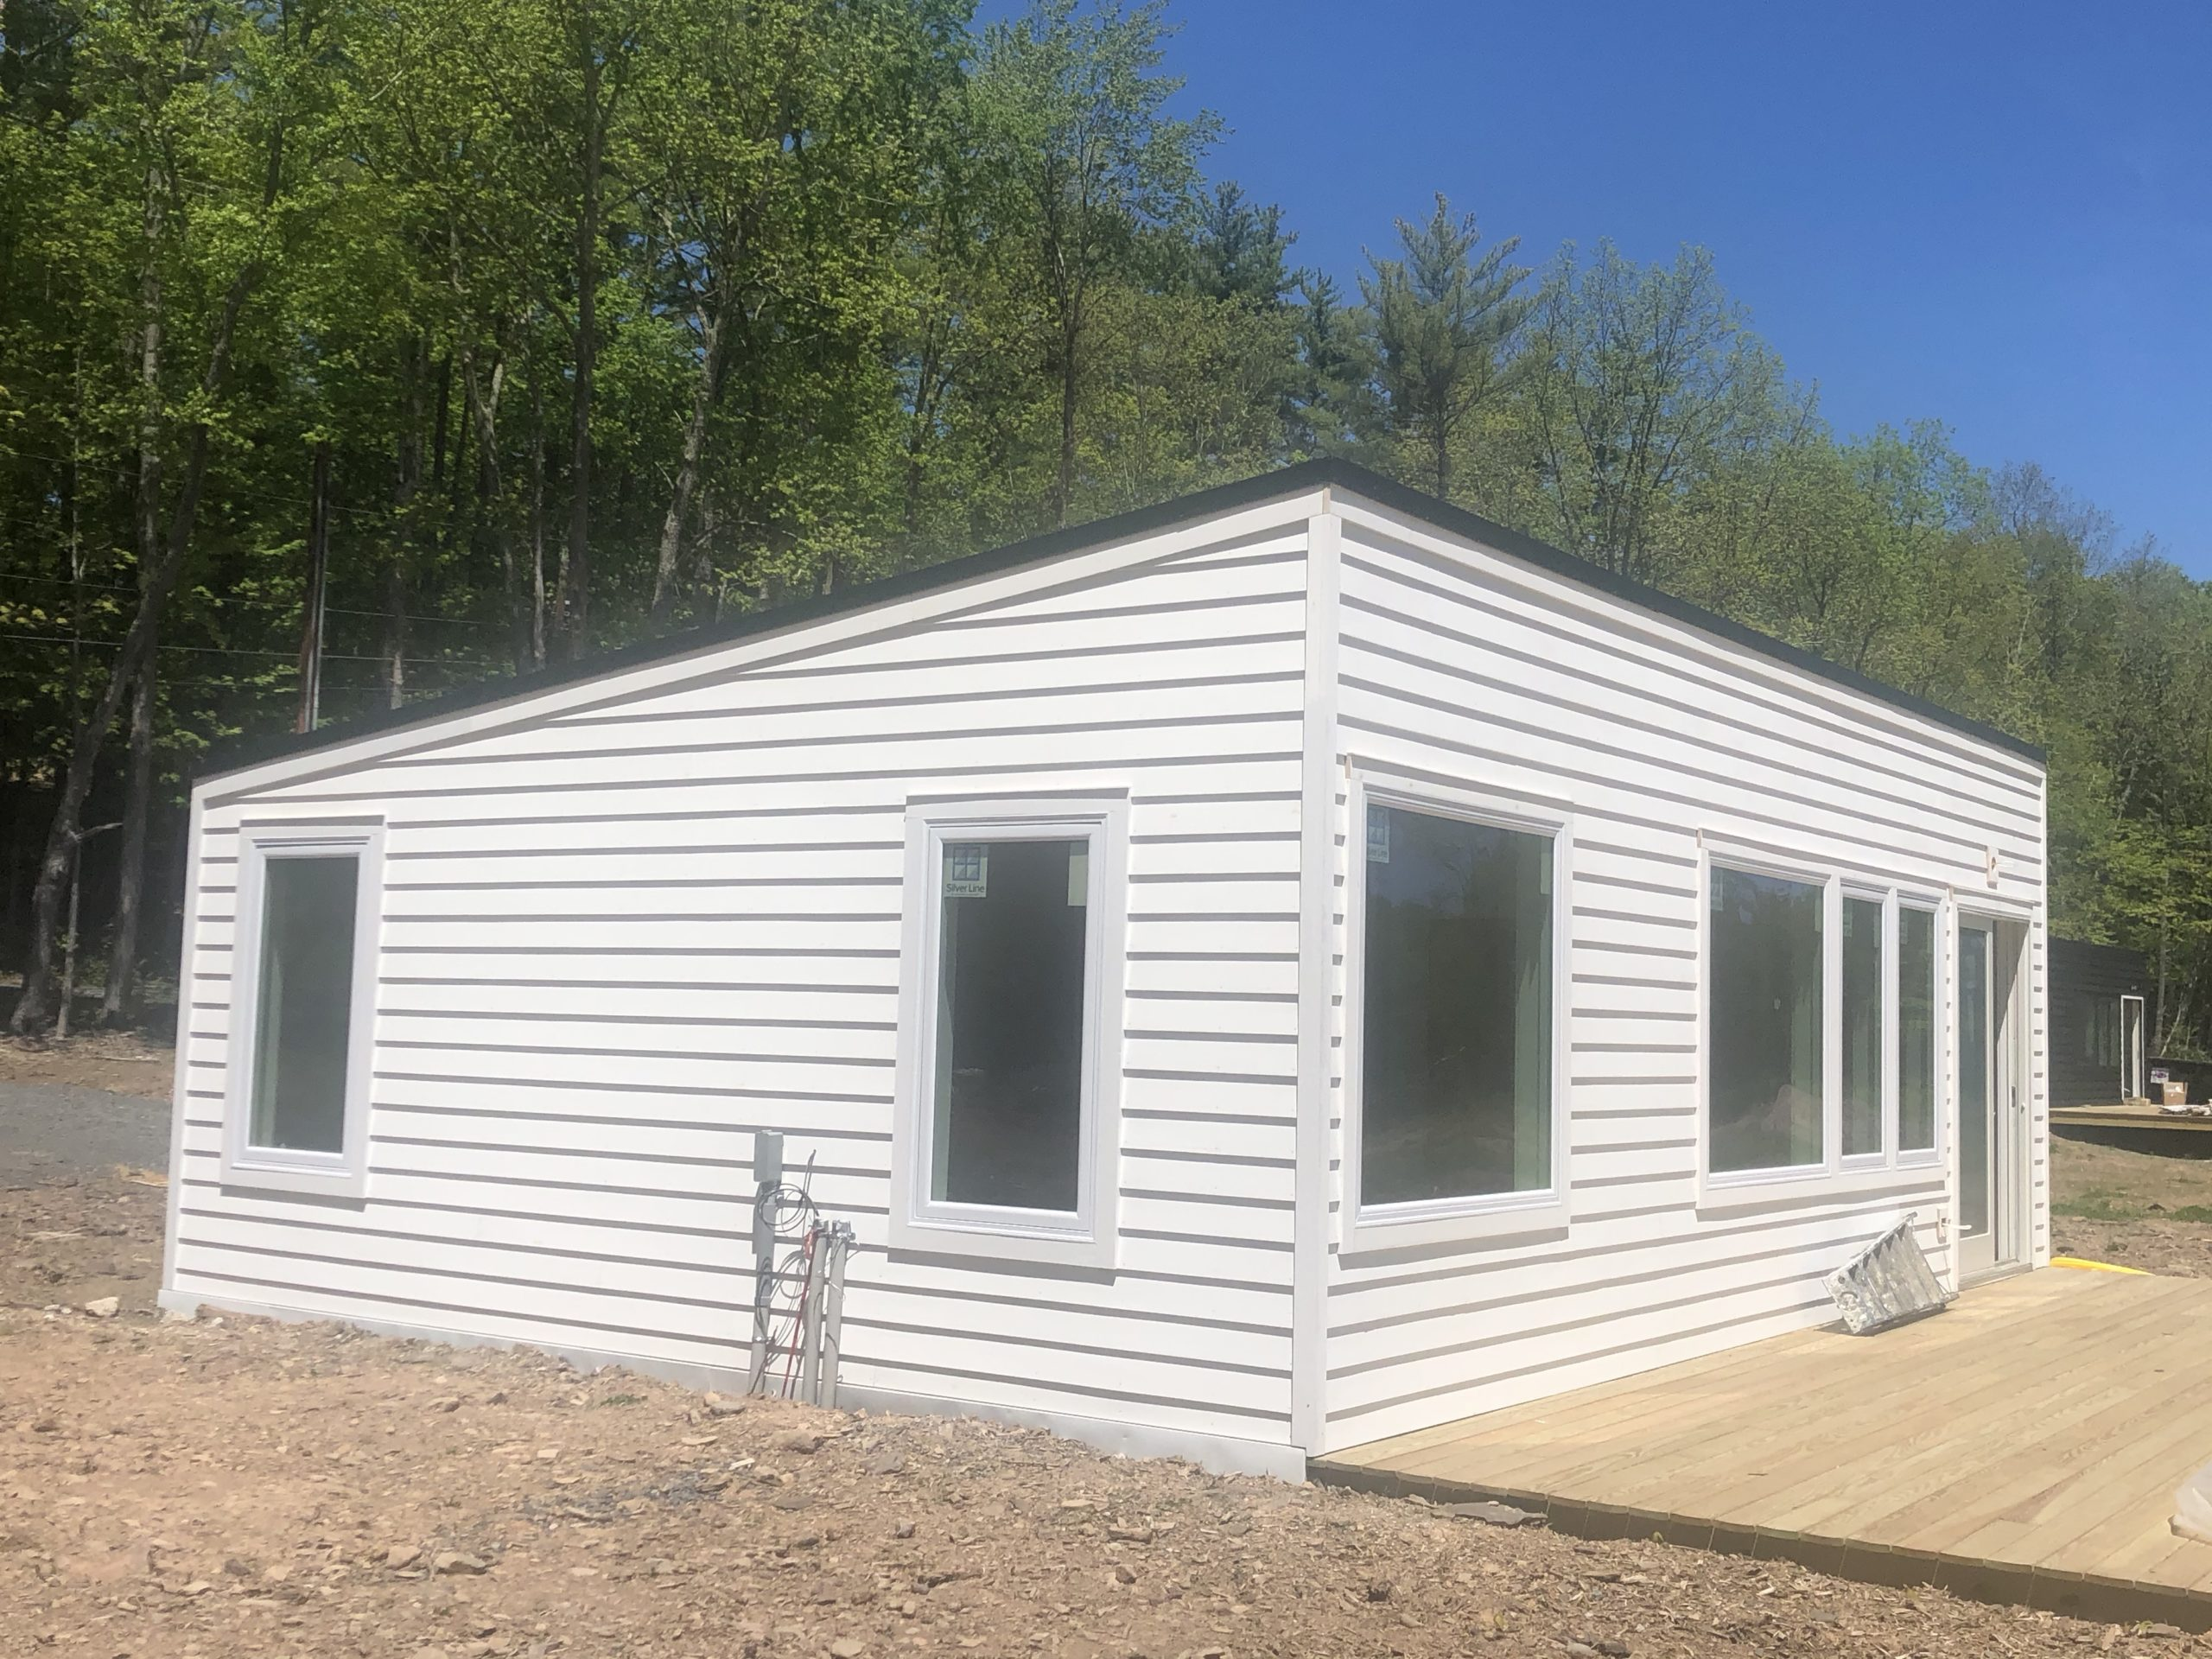 One of Catskill Farms' Mini-Homes in Saugerties